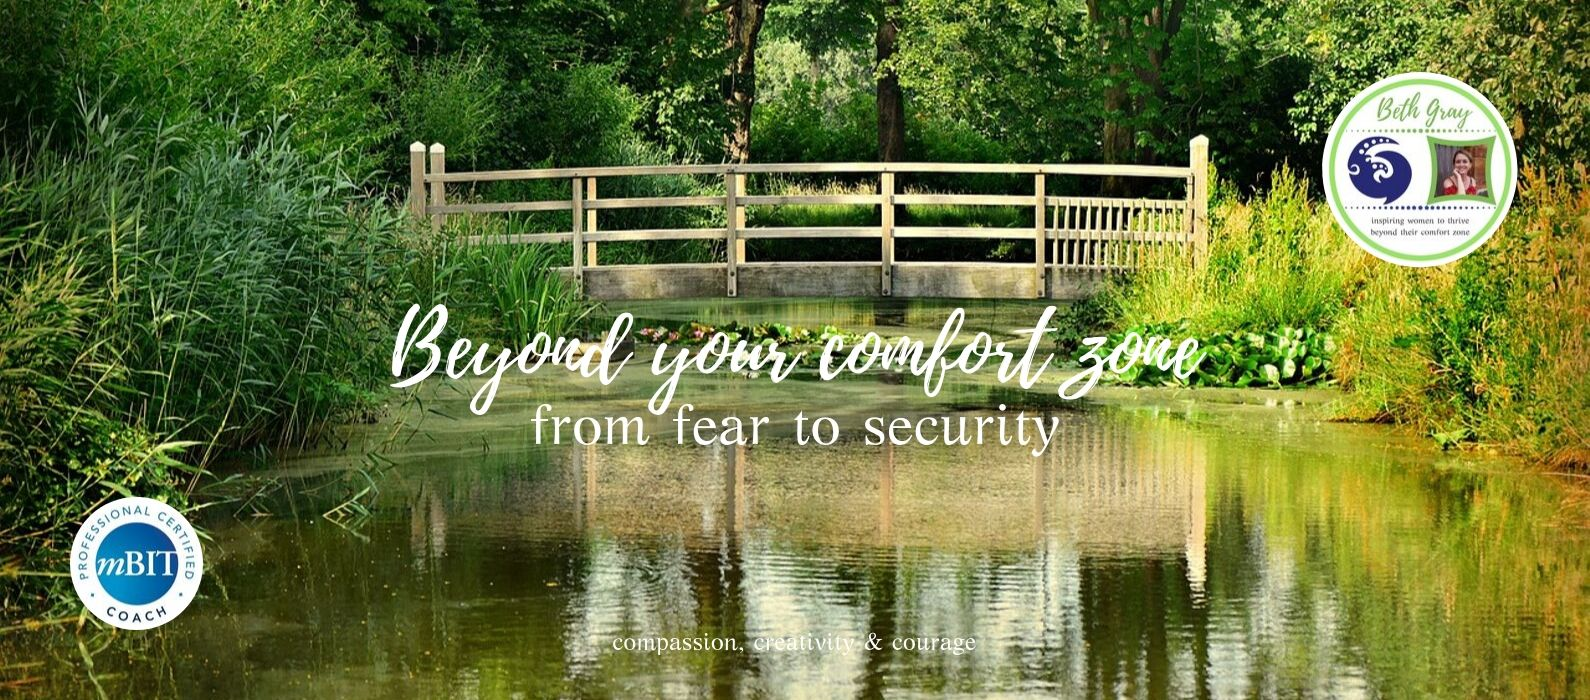 safety, beyond your comfort zone, from fear to security, Maslow's hierarchy of needs, primal need, connection with others, being loved, esteem, personal value, self-confidence, financial security, emotional security, physical security, unhealthy relationships, toxic relationship, emotional intelligence, identifying your feelings, manage feelings, motivated by lack, motivated by fear, caution, trusting yourself, trusting your feelings, speaking up for yourself, short-term risk, long-term safety